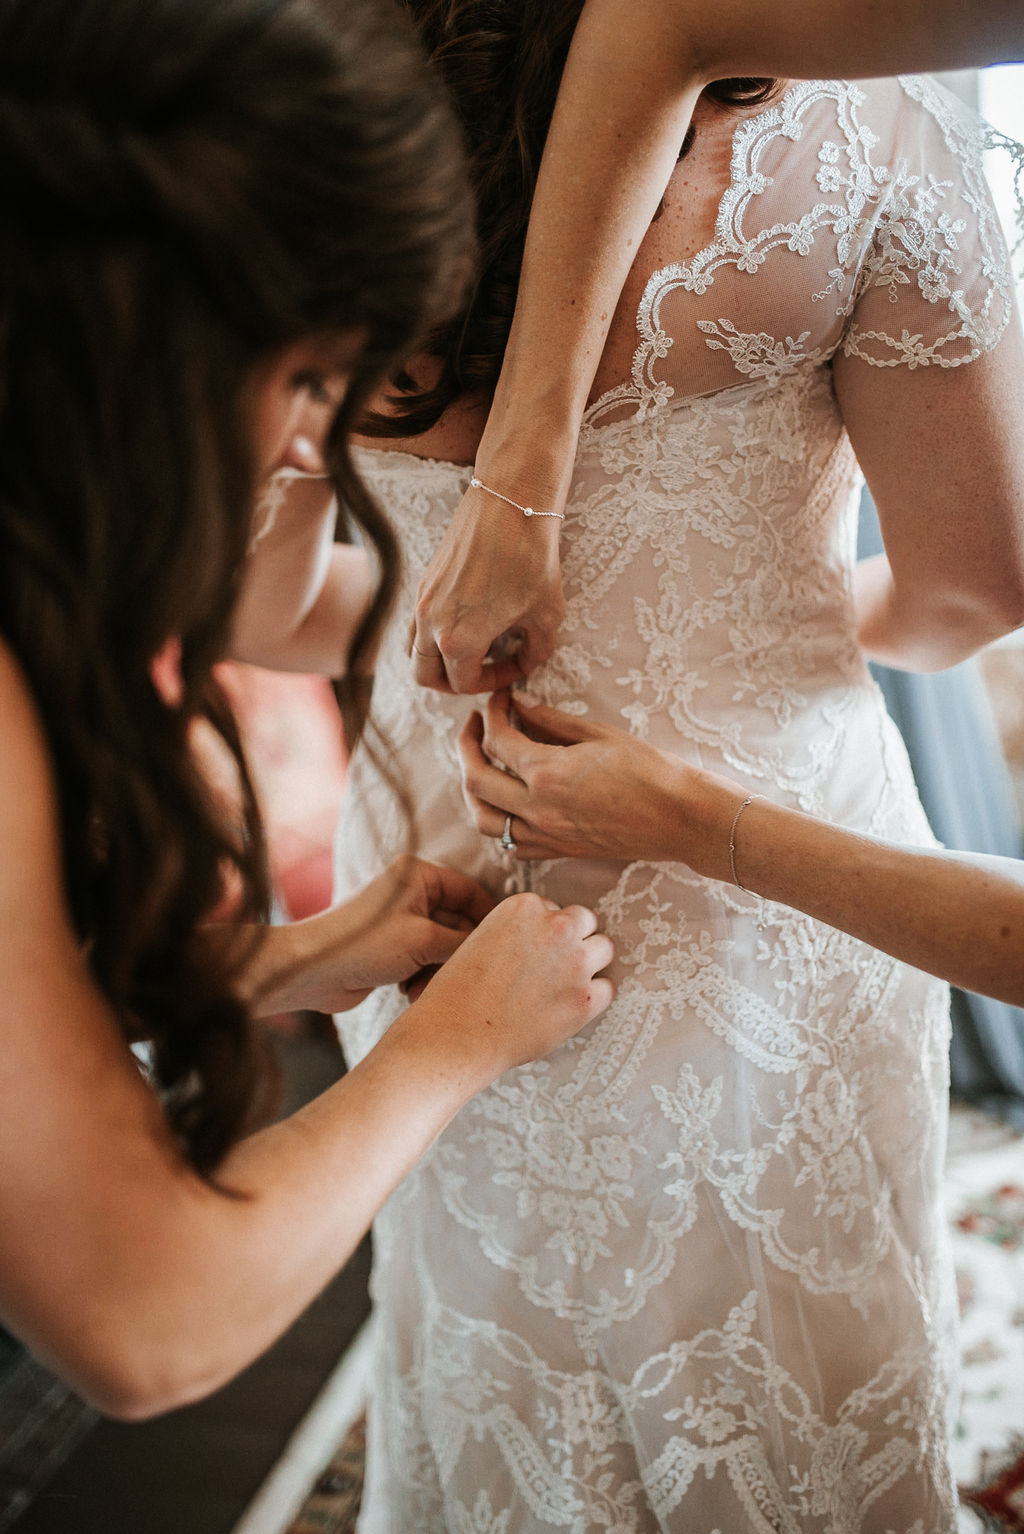 bridesmaids helping bride get in to wedding dress at Khimaira Farm